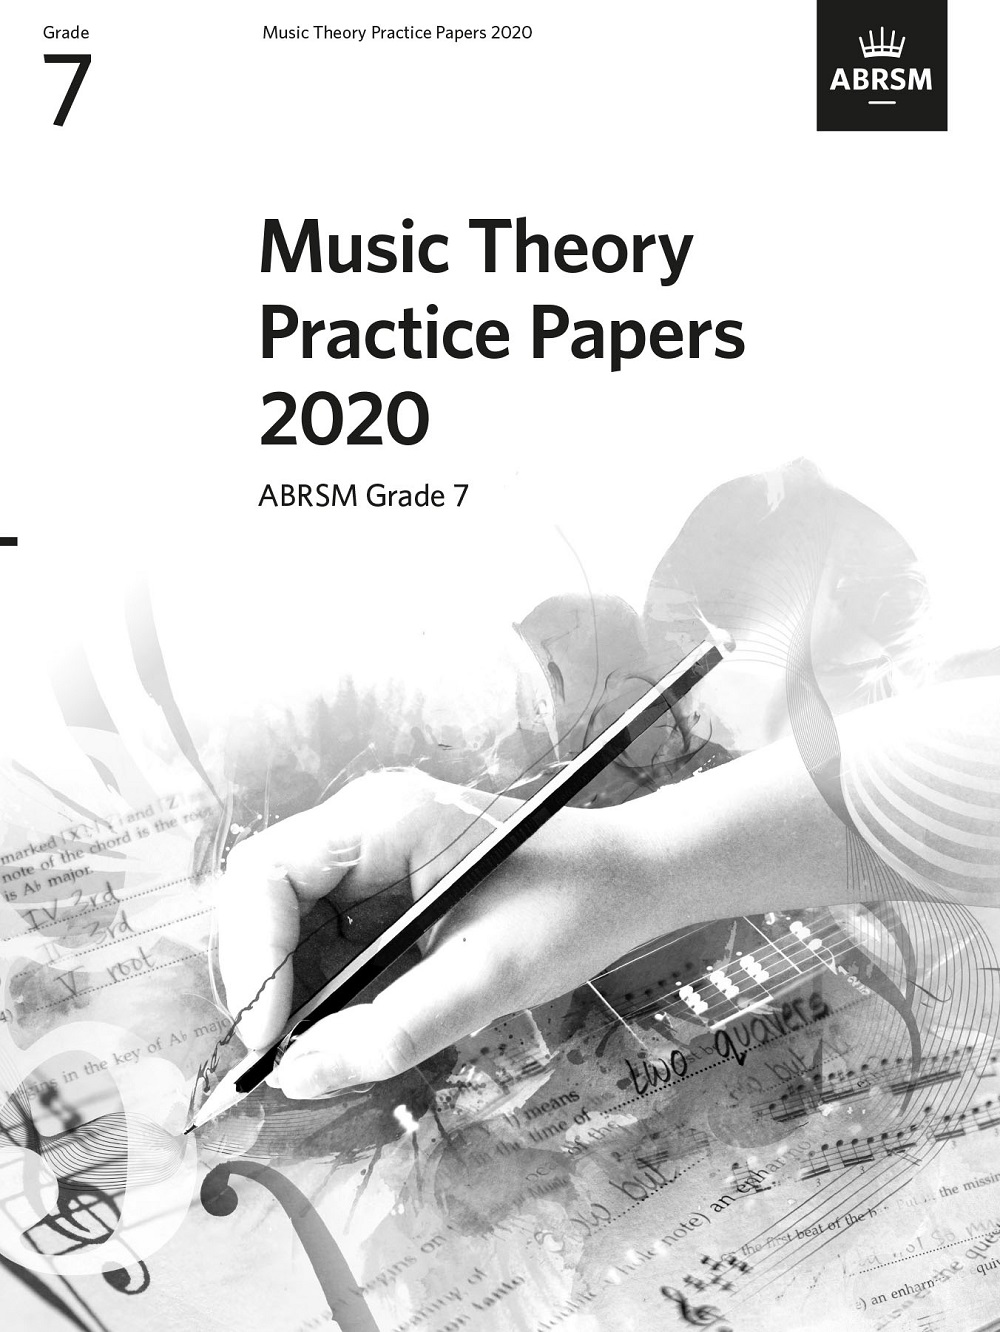 Music Theory Practice Papers 2020 Grade 7: Theory